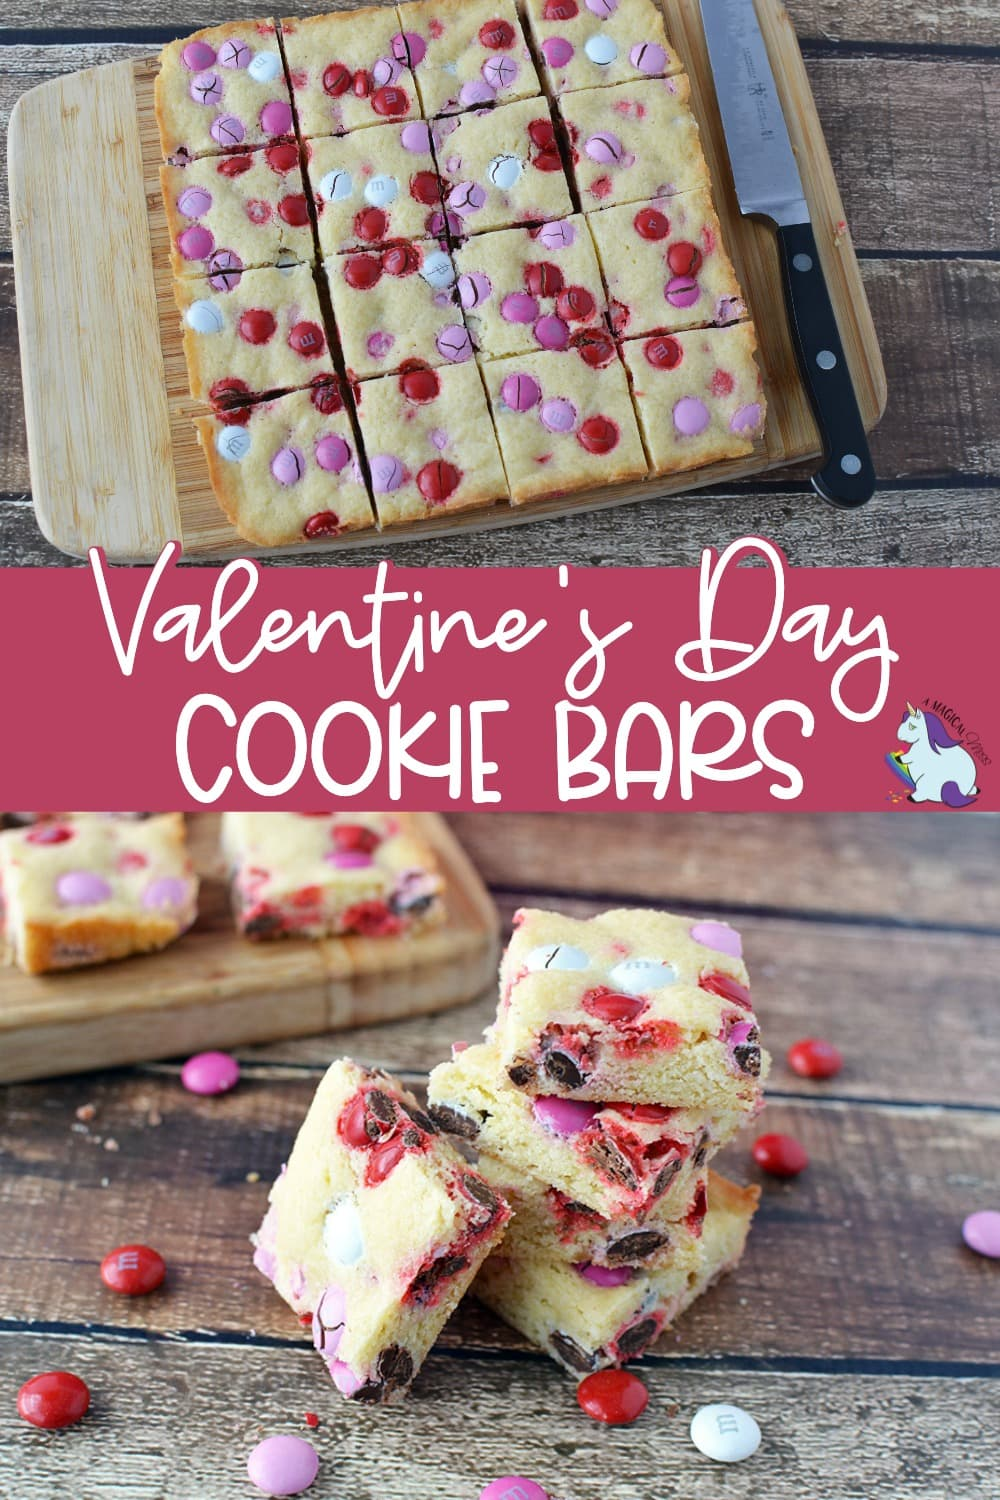 Cookie bars with Valentine's Day colored candies